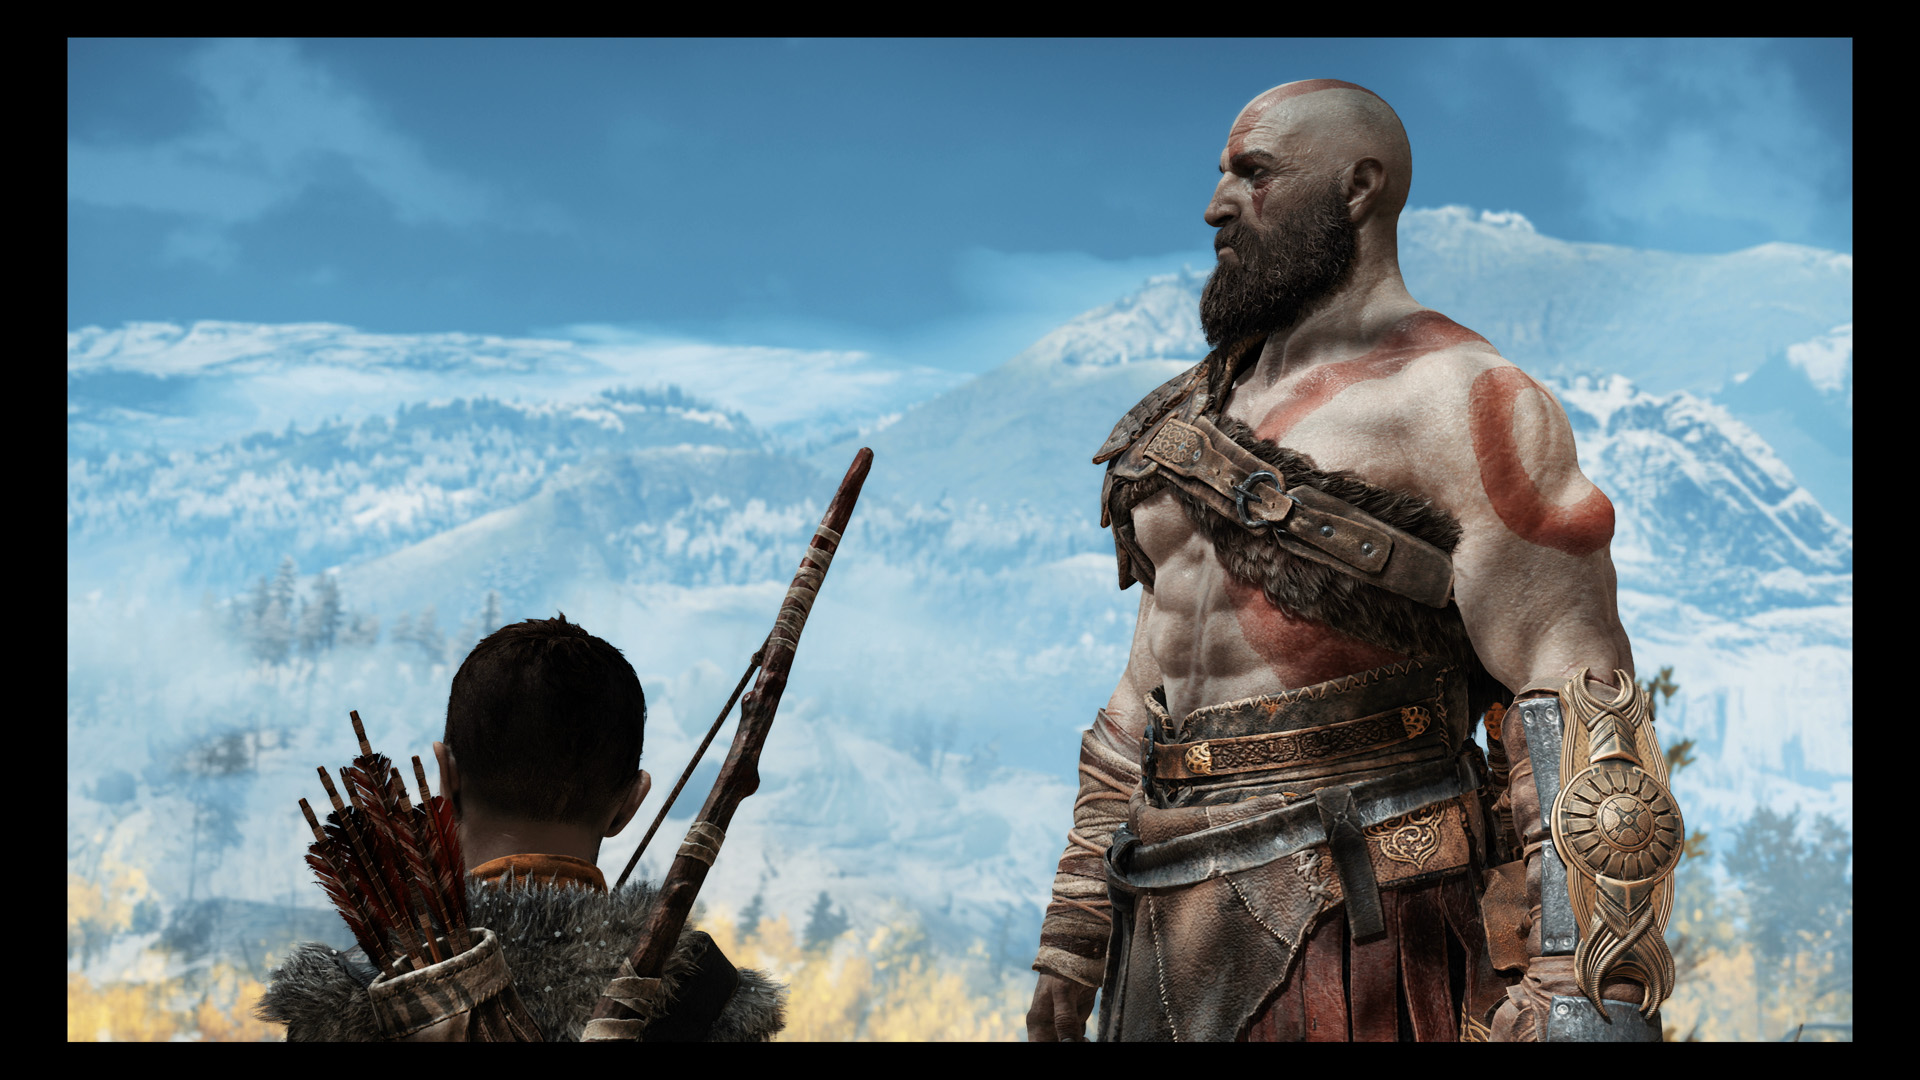 God Of War Story Primerall The Key Events In The Series Before God